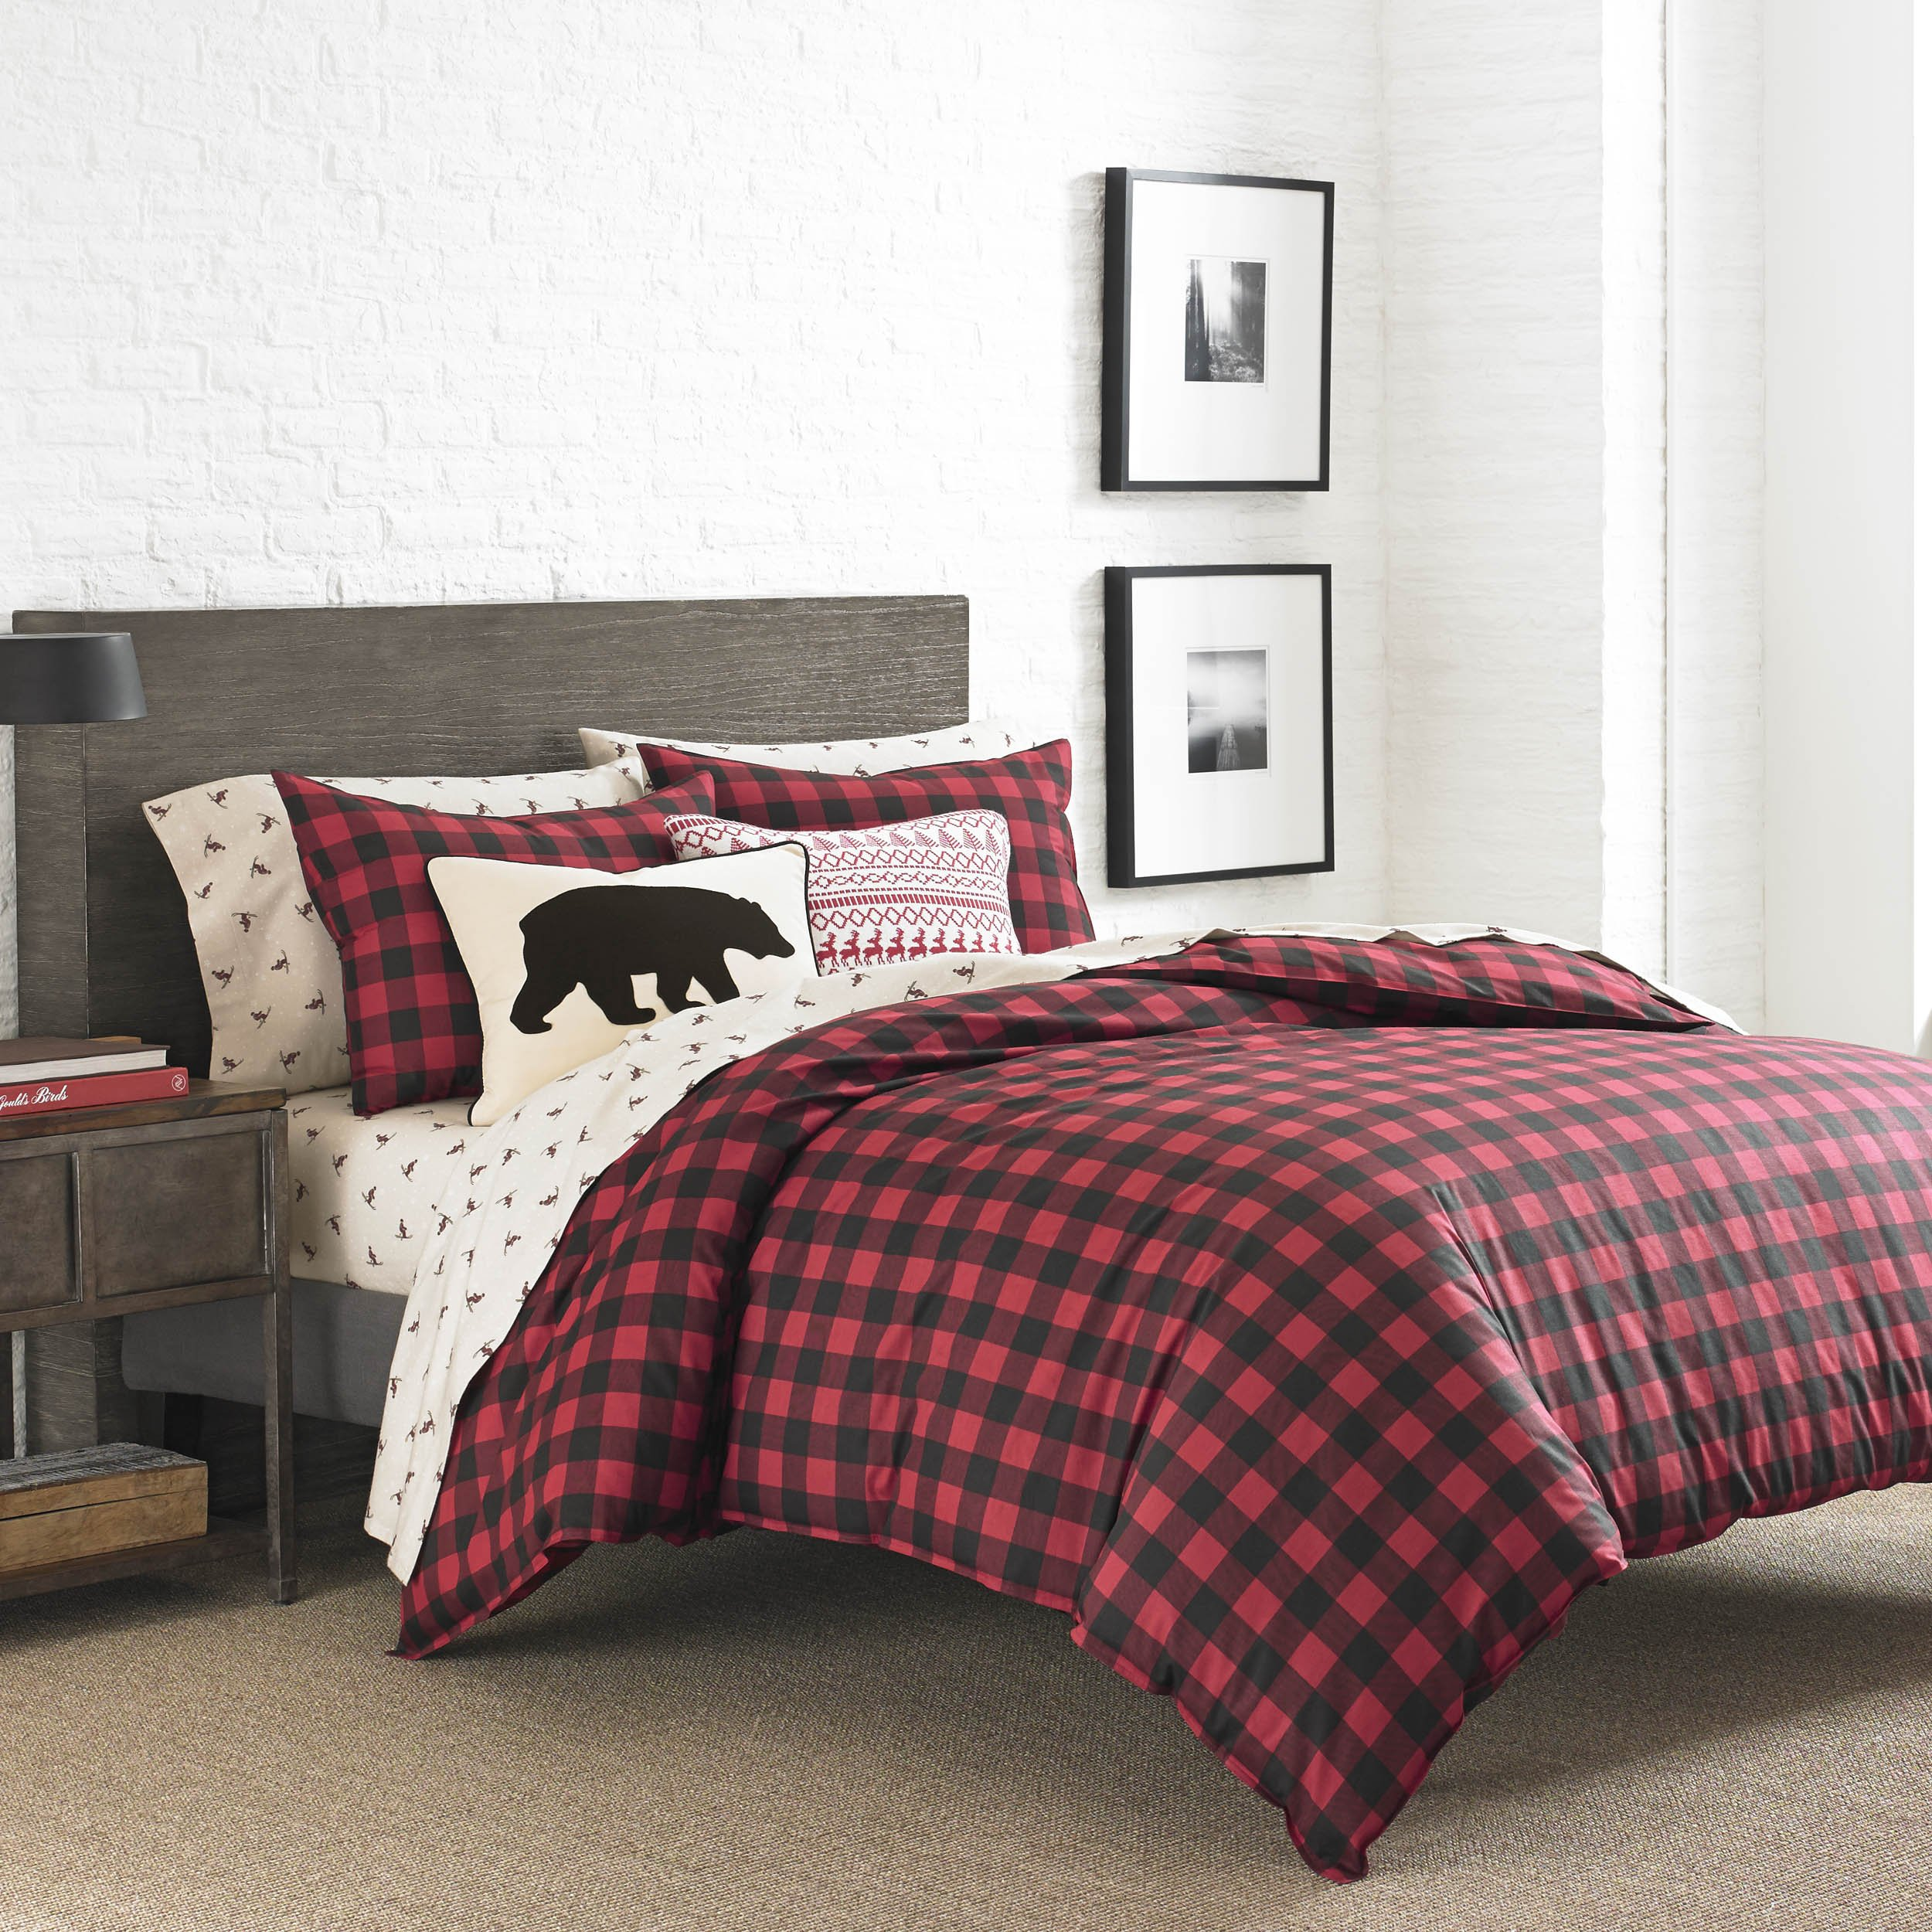 Eddie bauer 210708 mountain plaid duvet cover set scarlet king